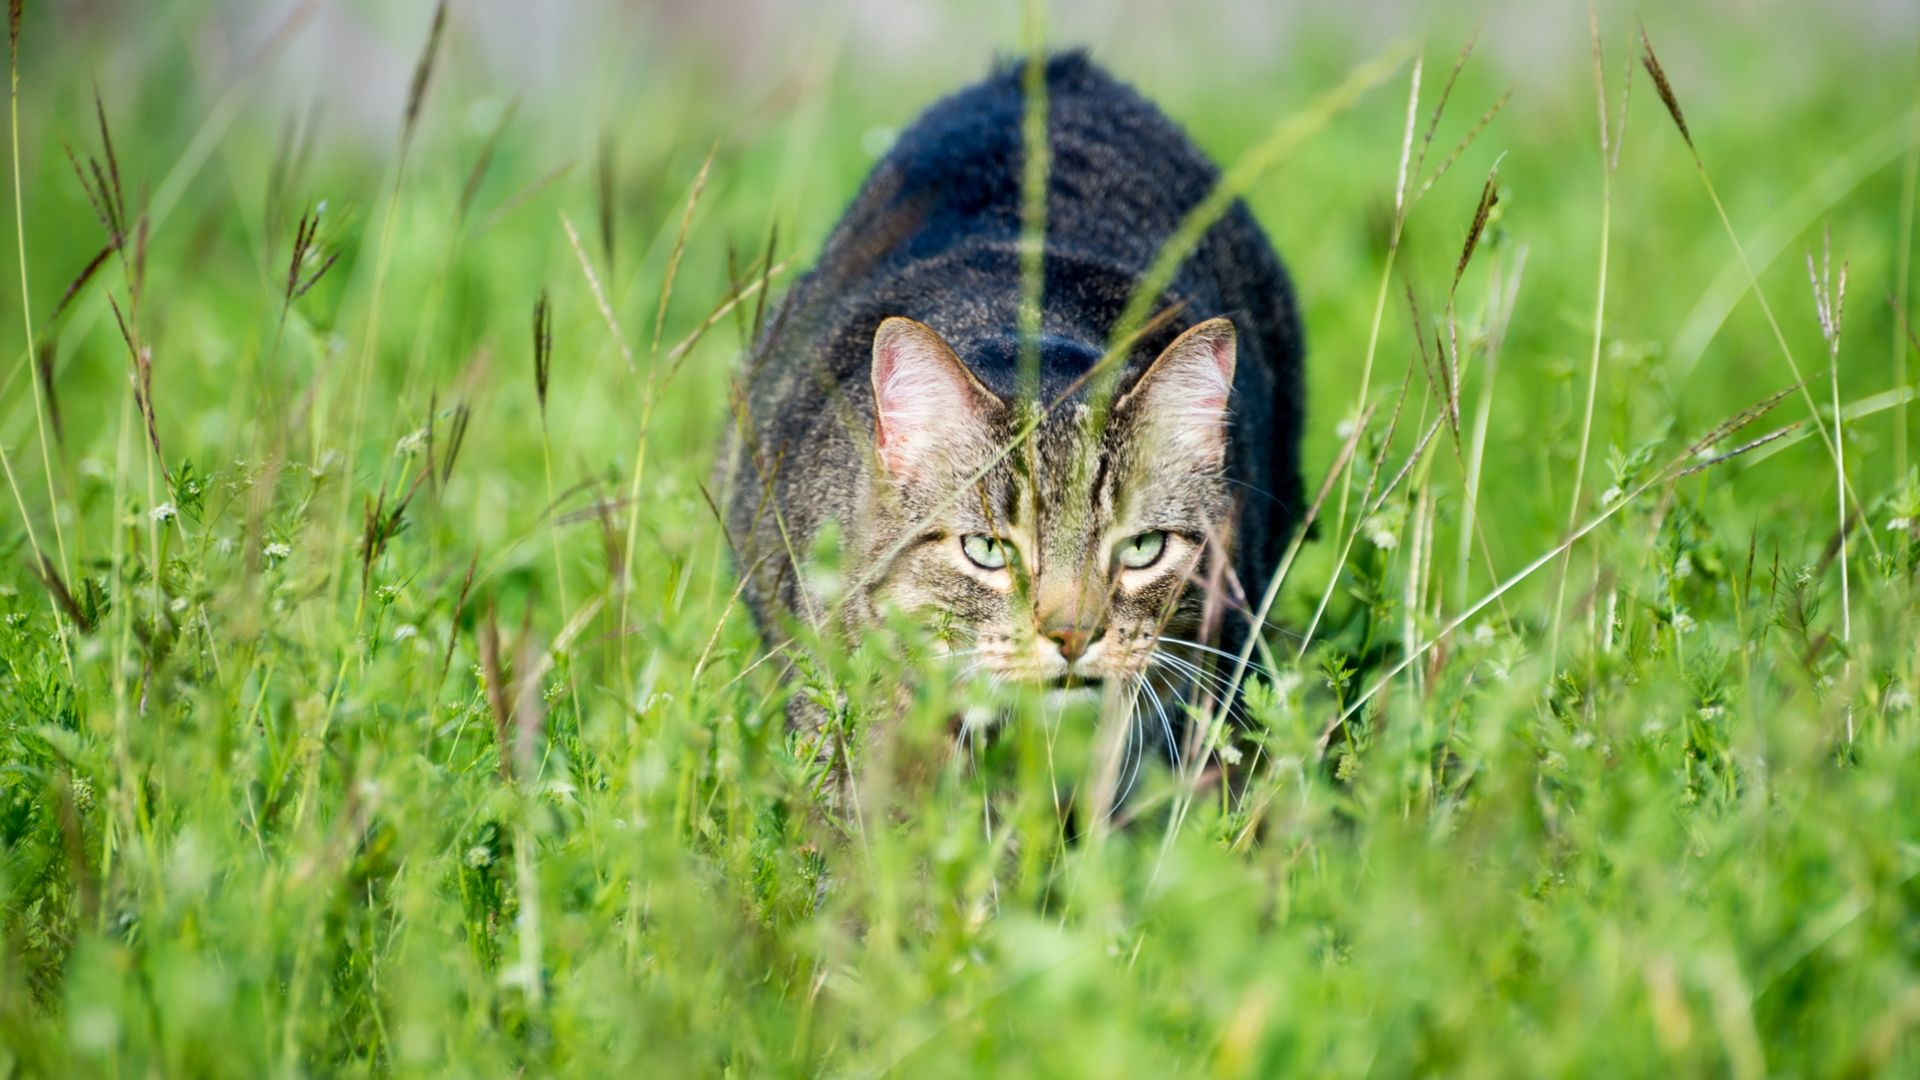 Are cats a threat to chickens?